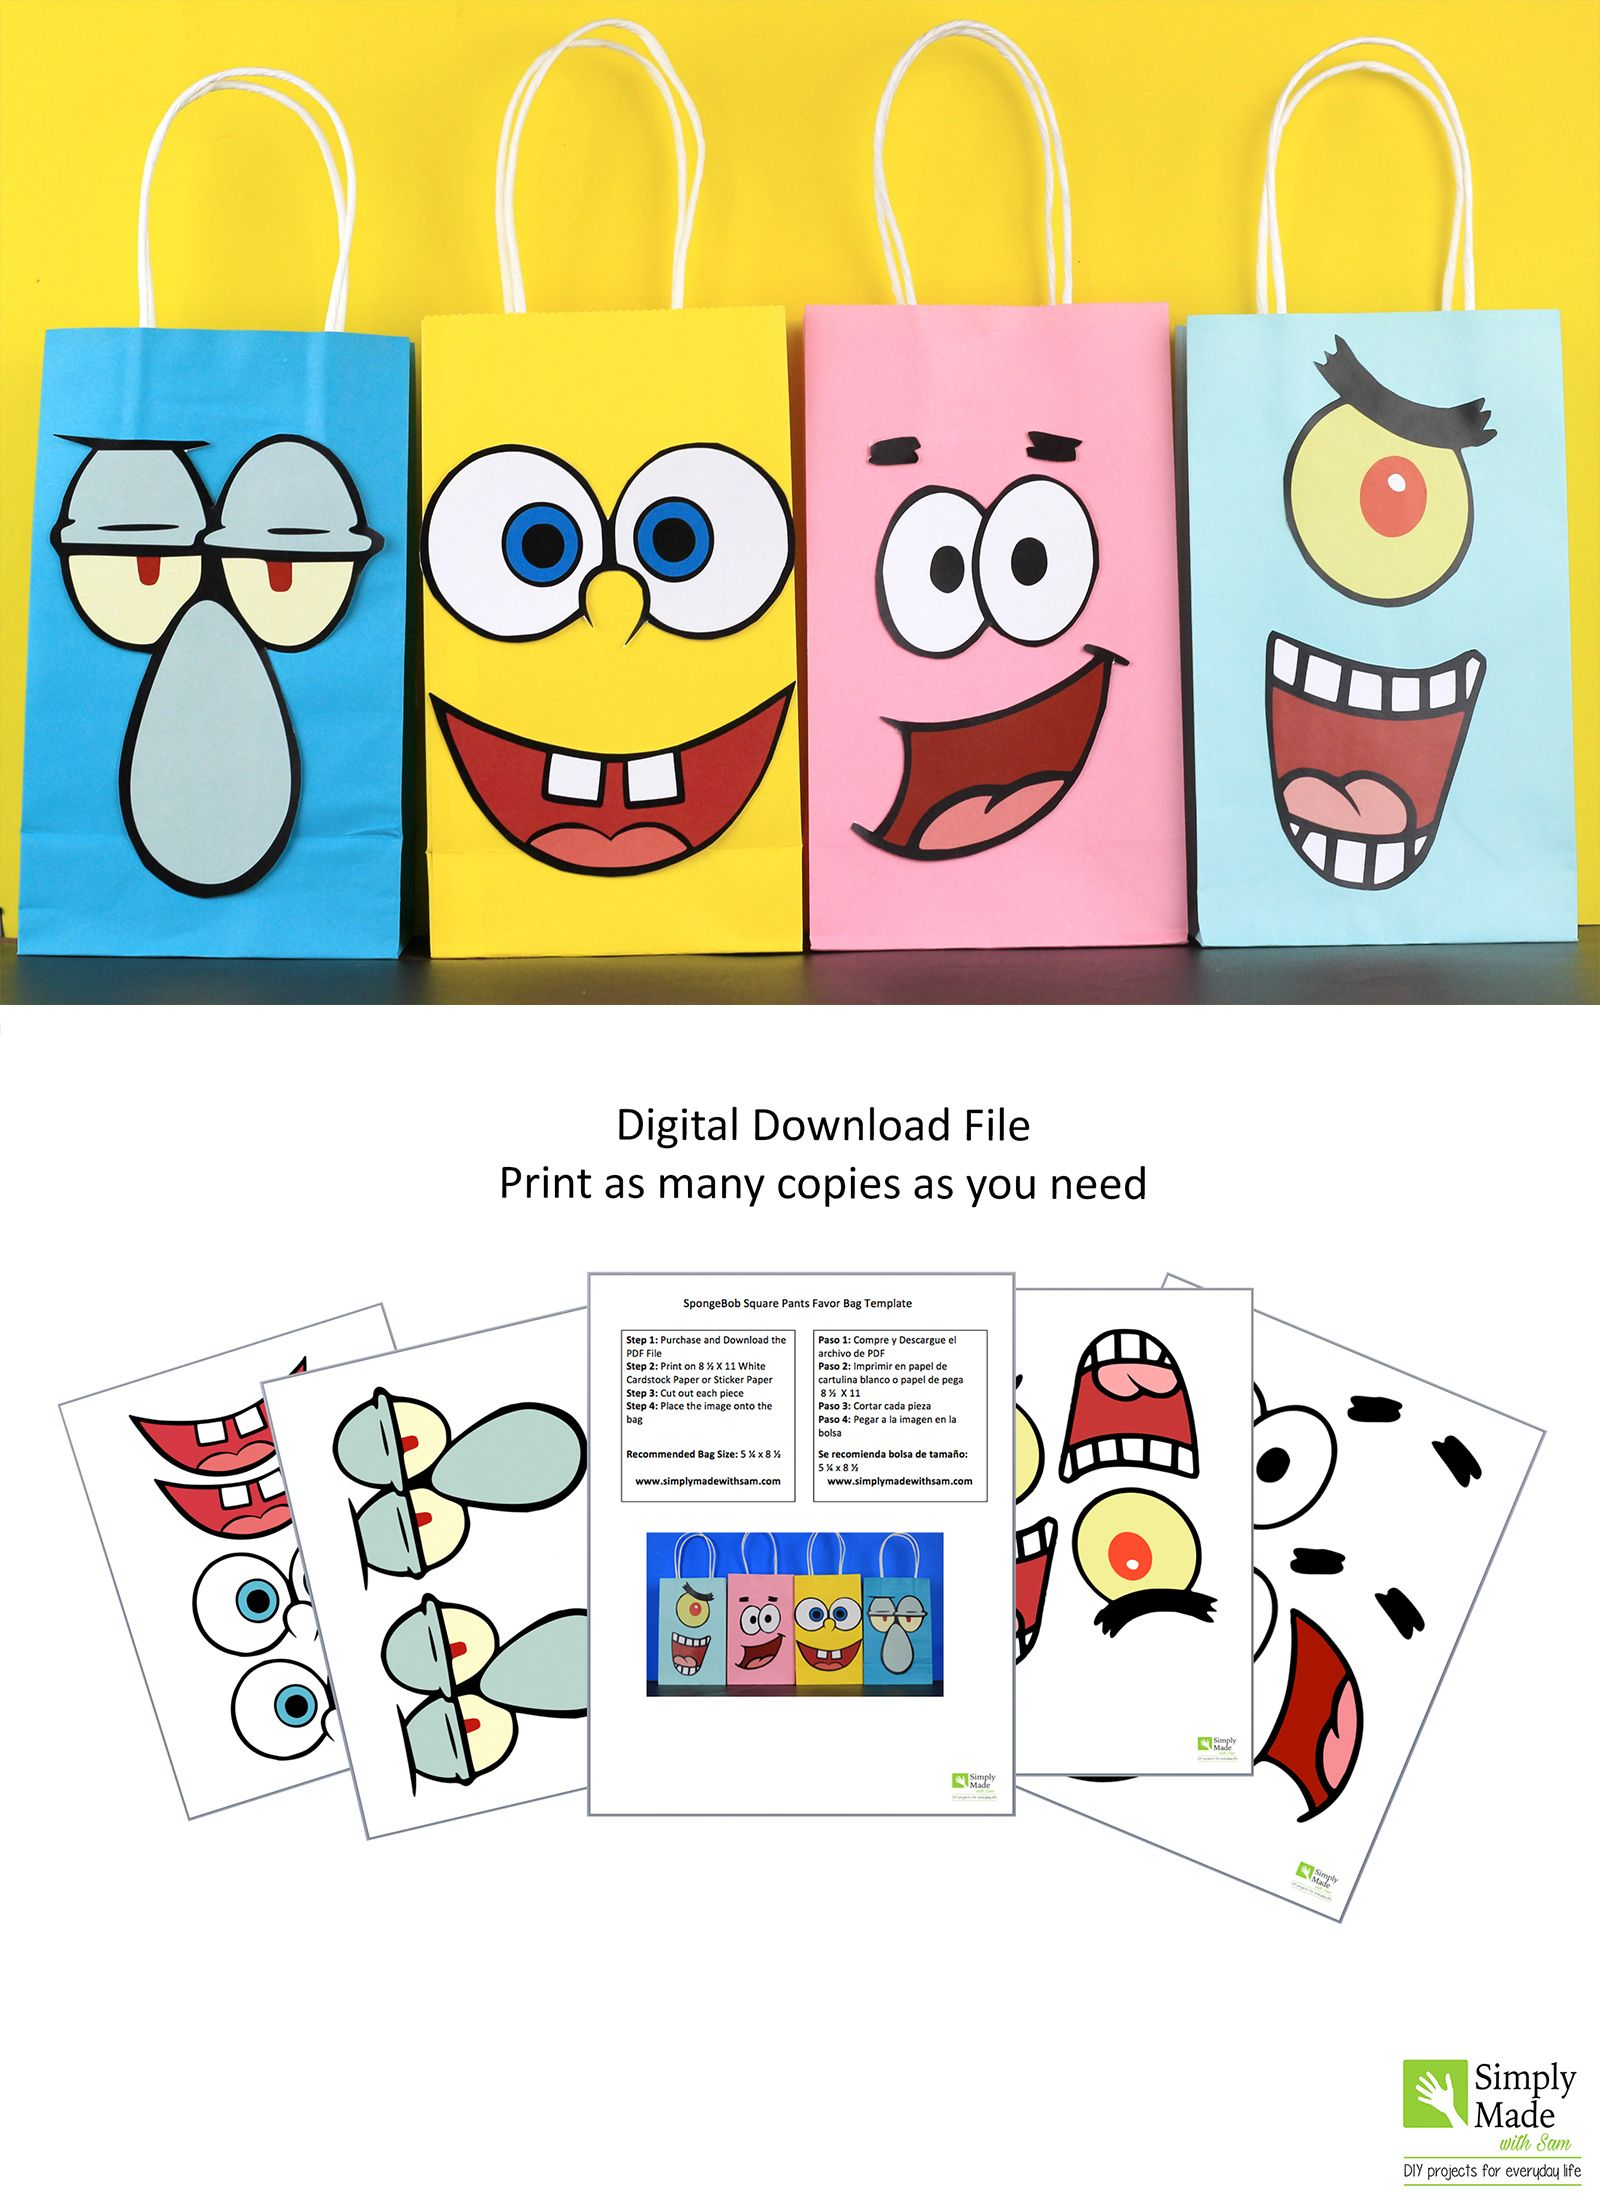 DIY Spongebob And Friends Favor Bags Simply Download Print Cut Paste As Many Copies You Need